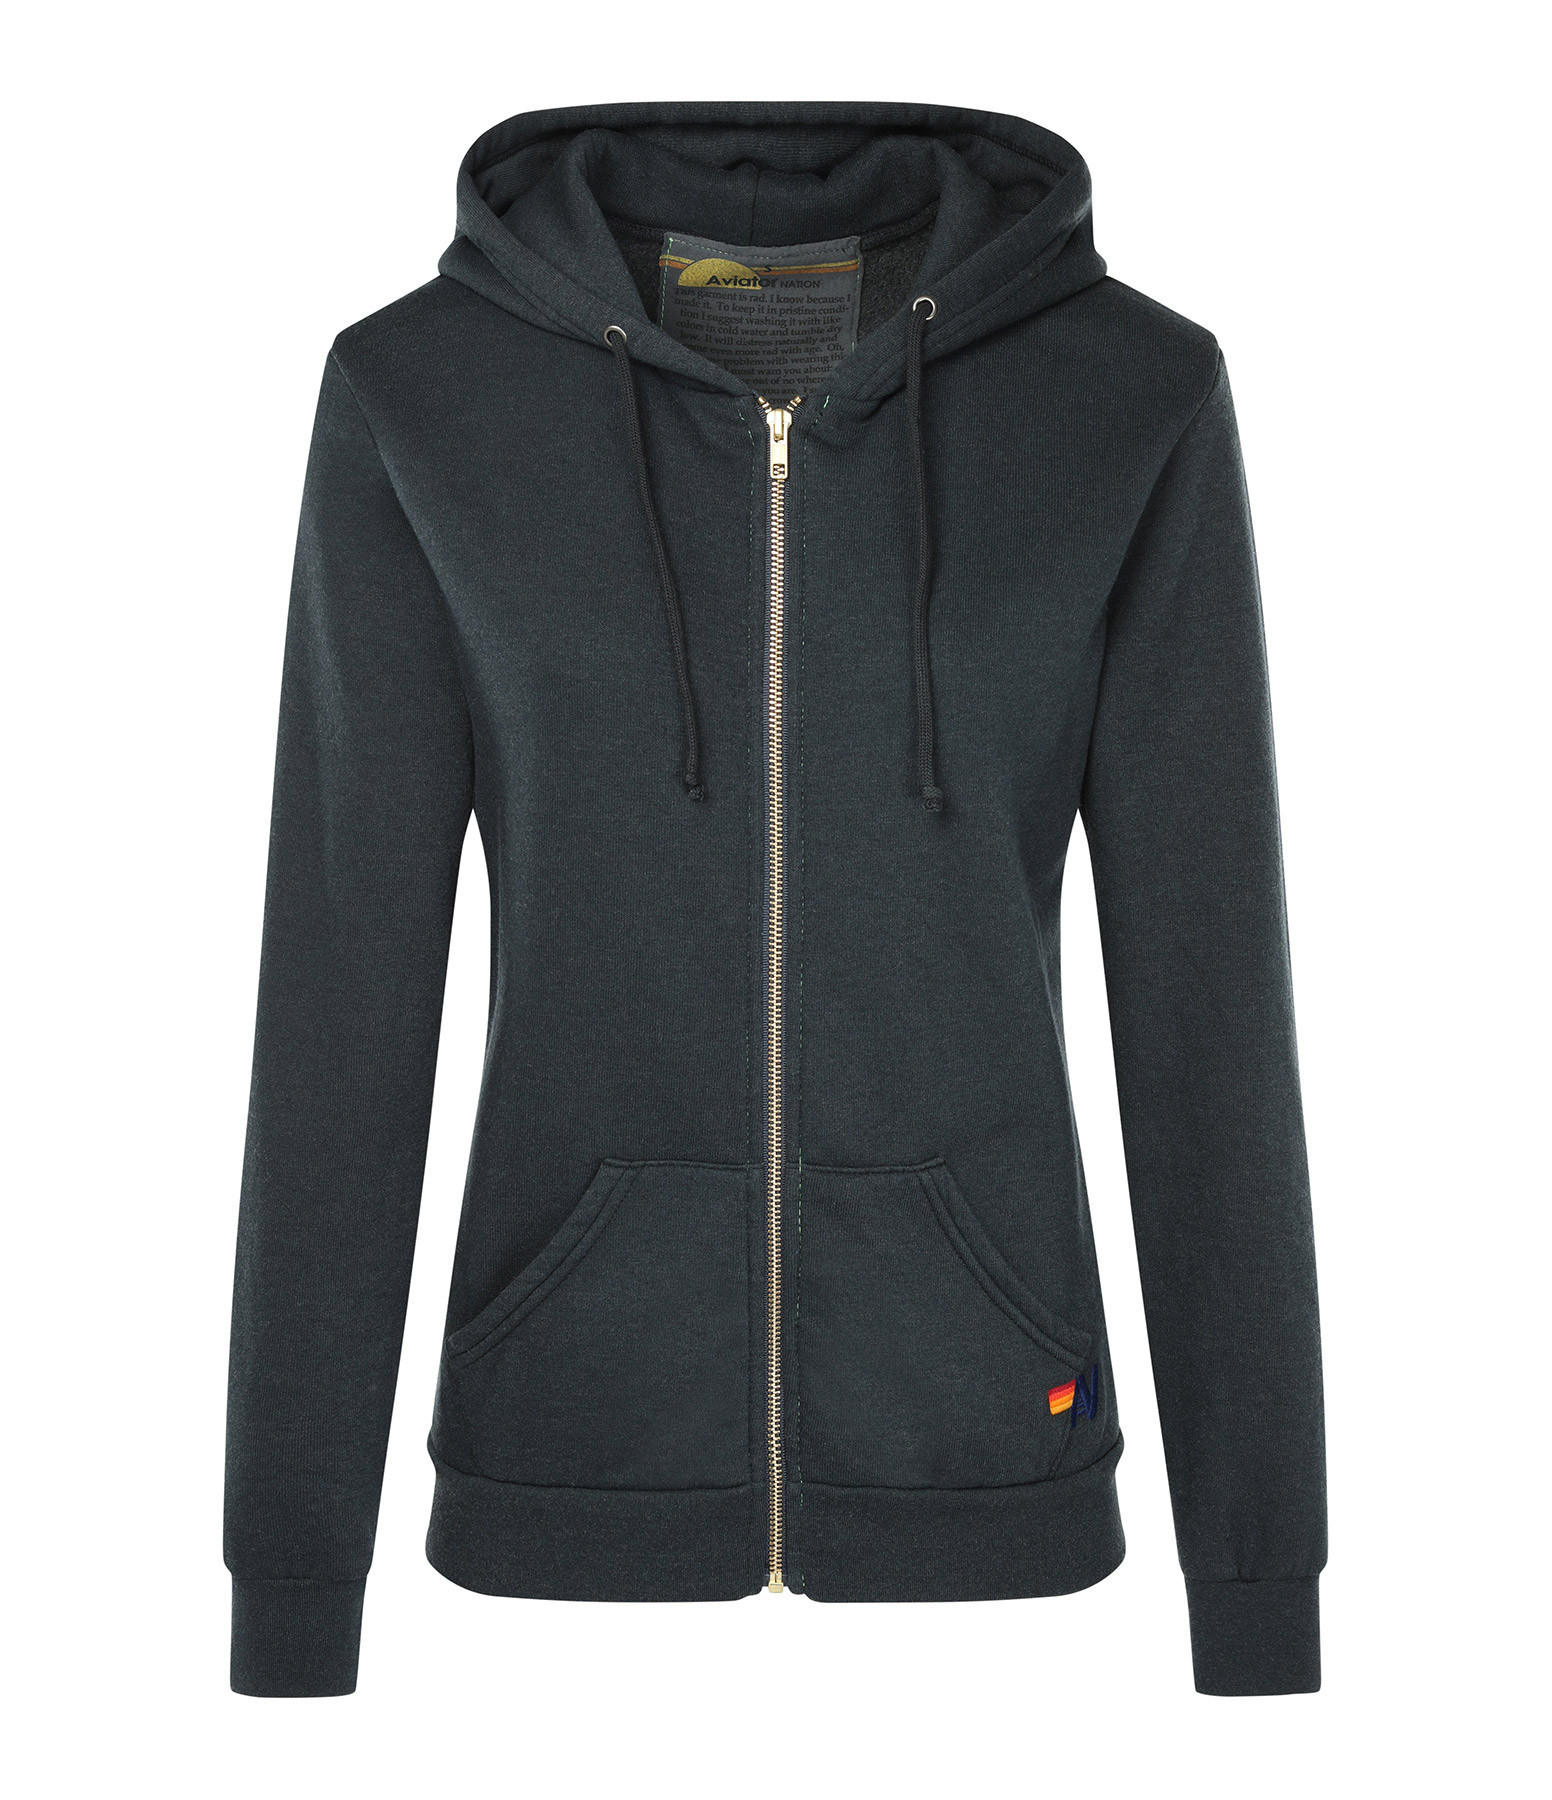 AVIATOR NATION - Sweatshirt Bolt Zip Métal Doré Charbon